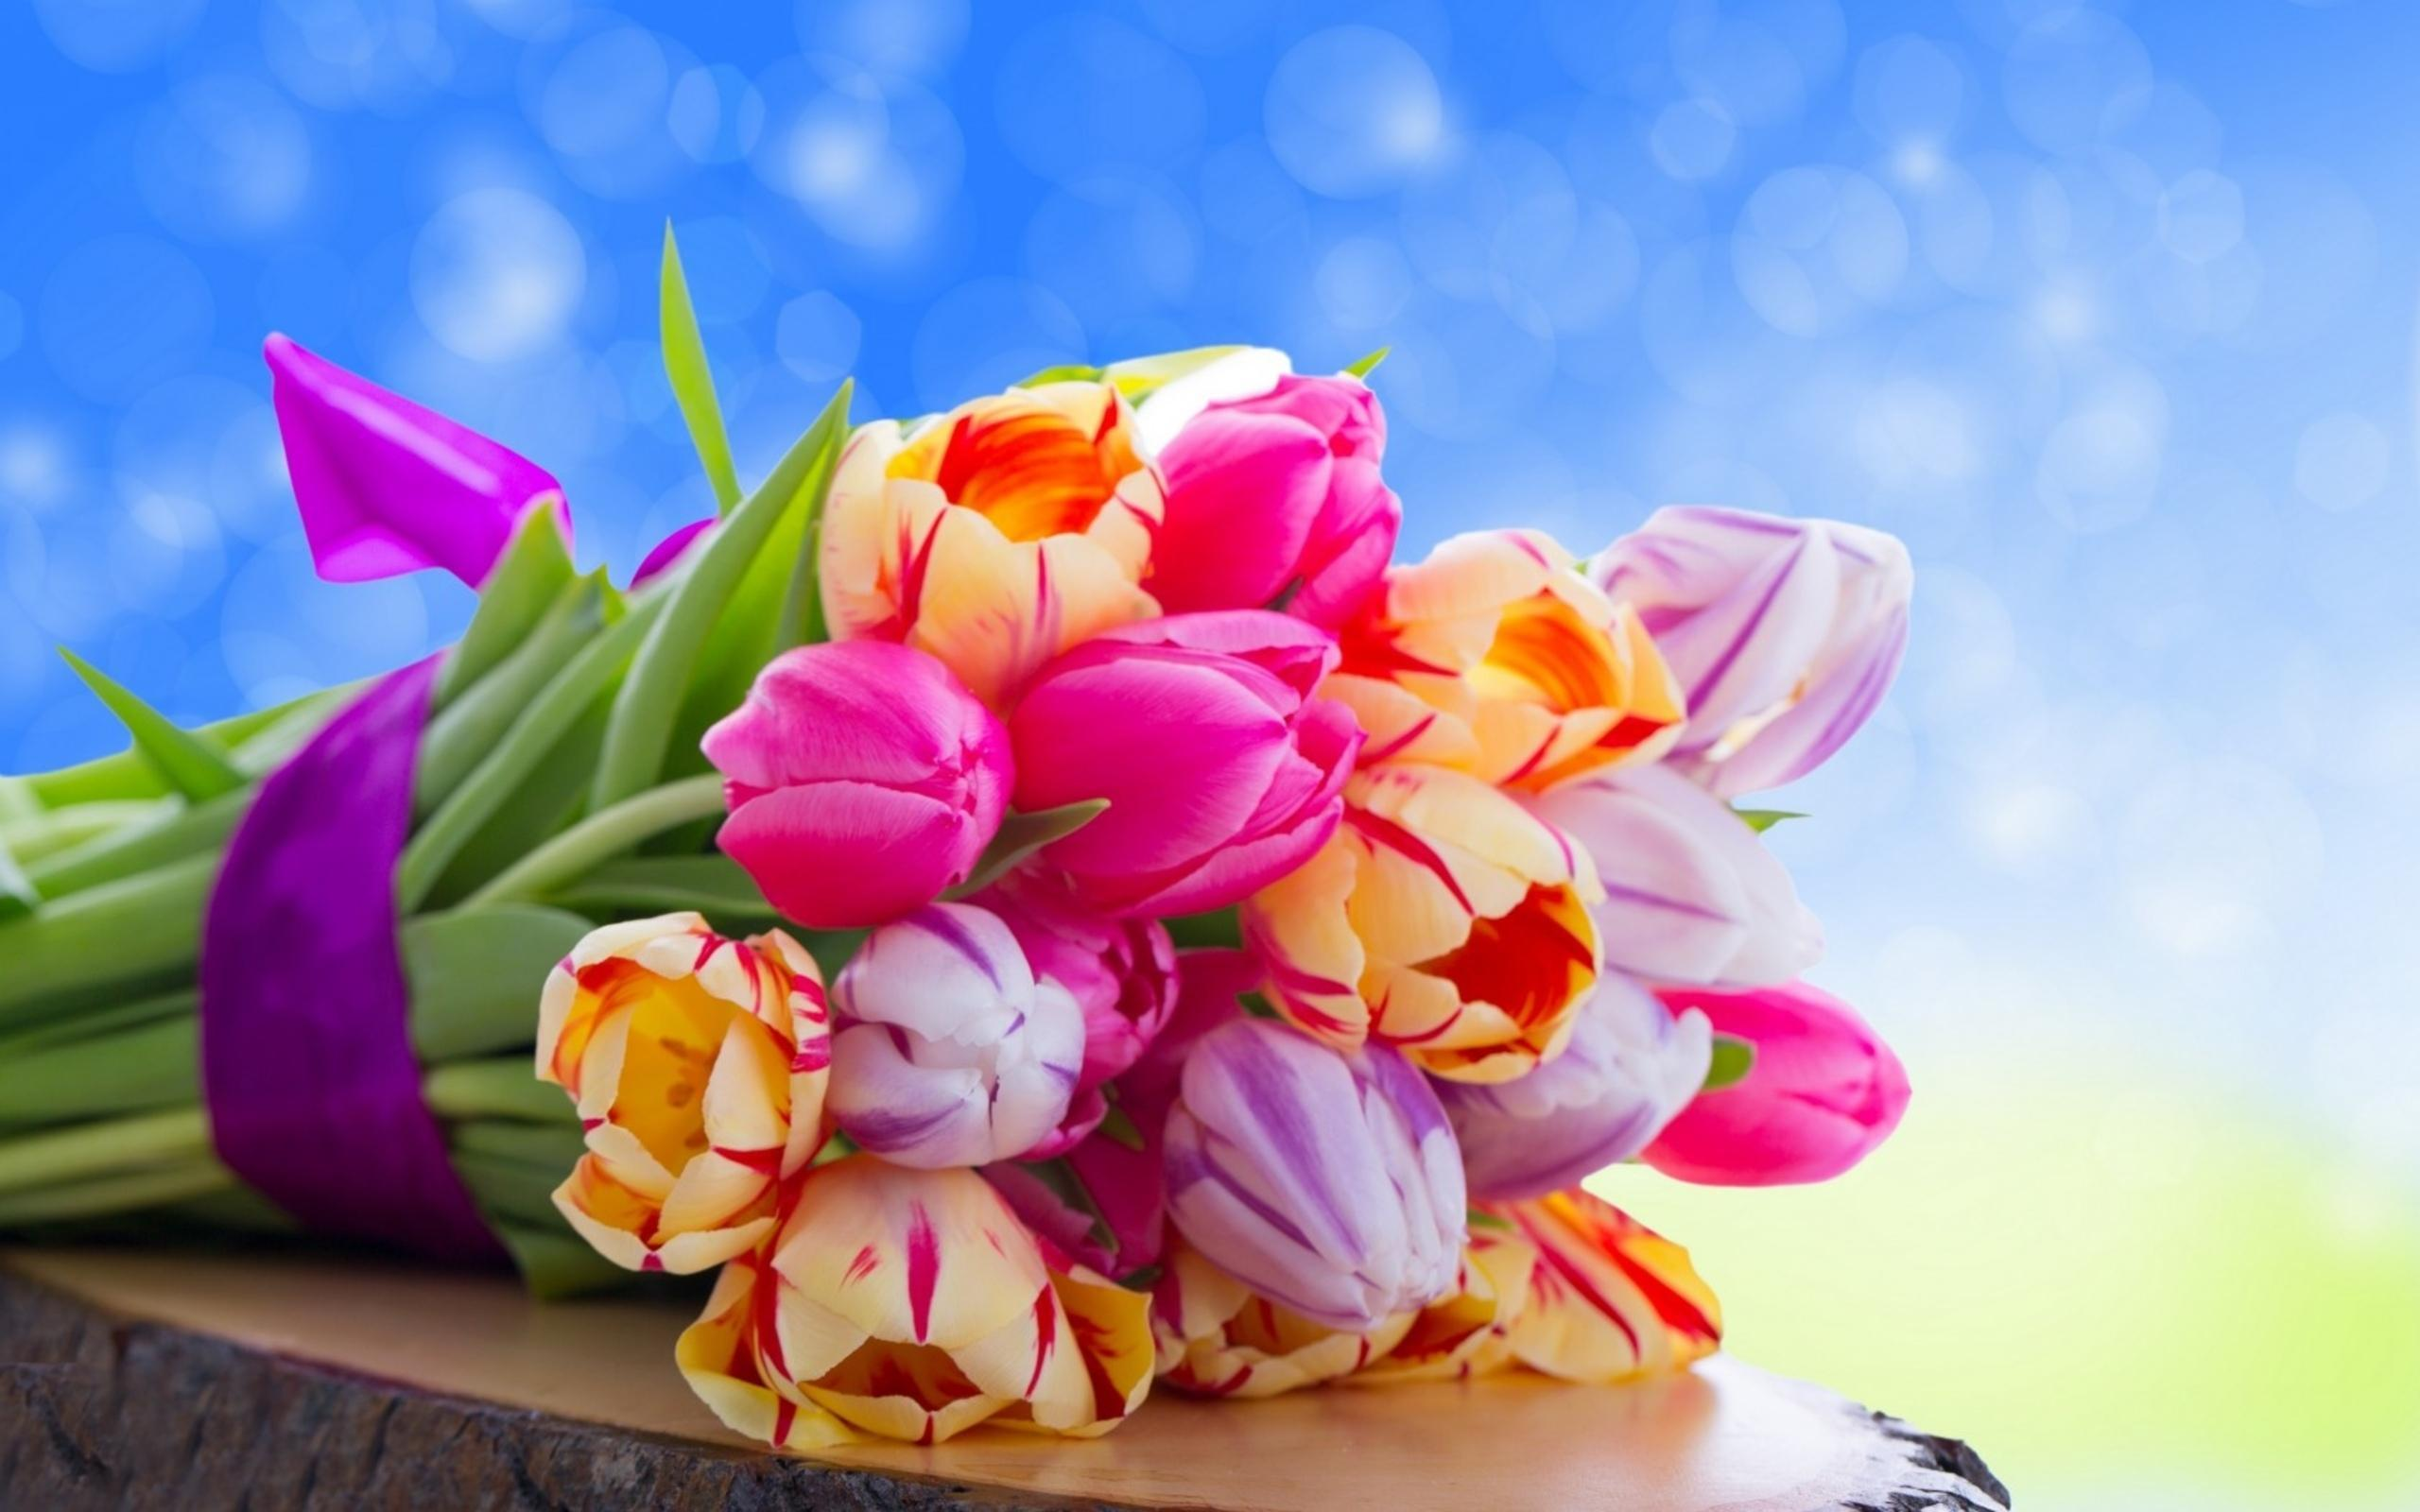 Free Colorful Flower Wallpaper Downloads: Beautiful Colorful Flowers Wallpapers